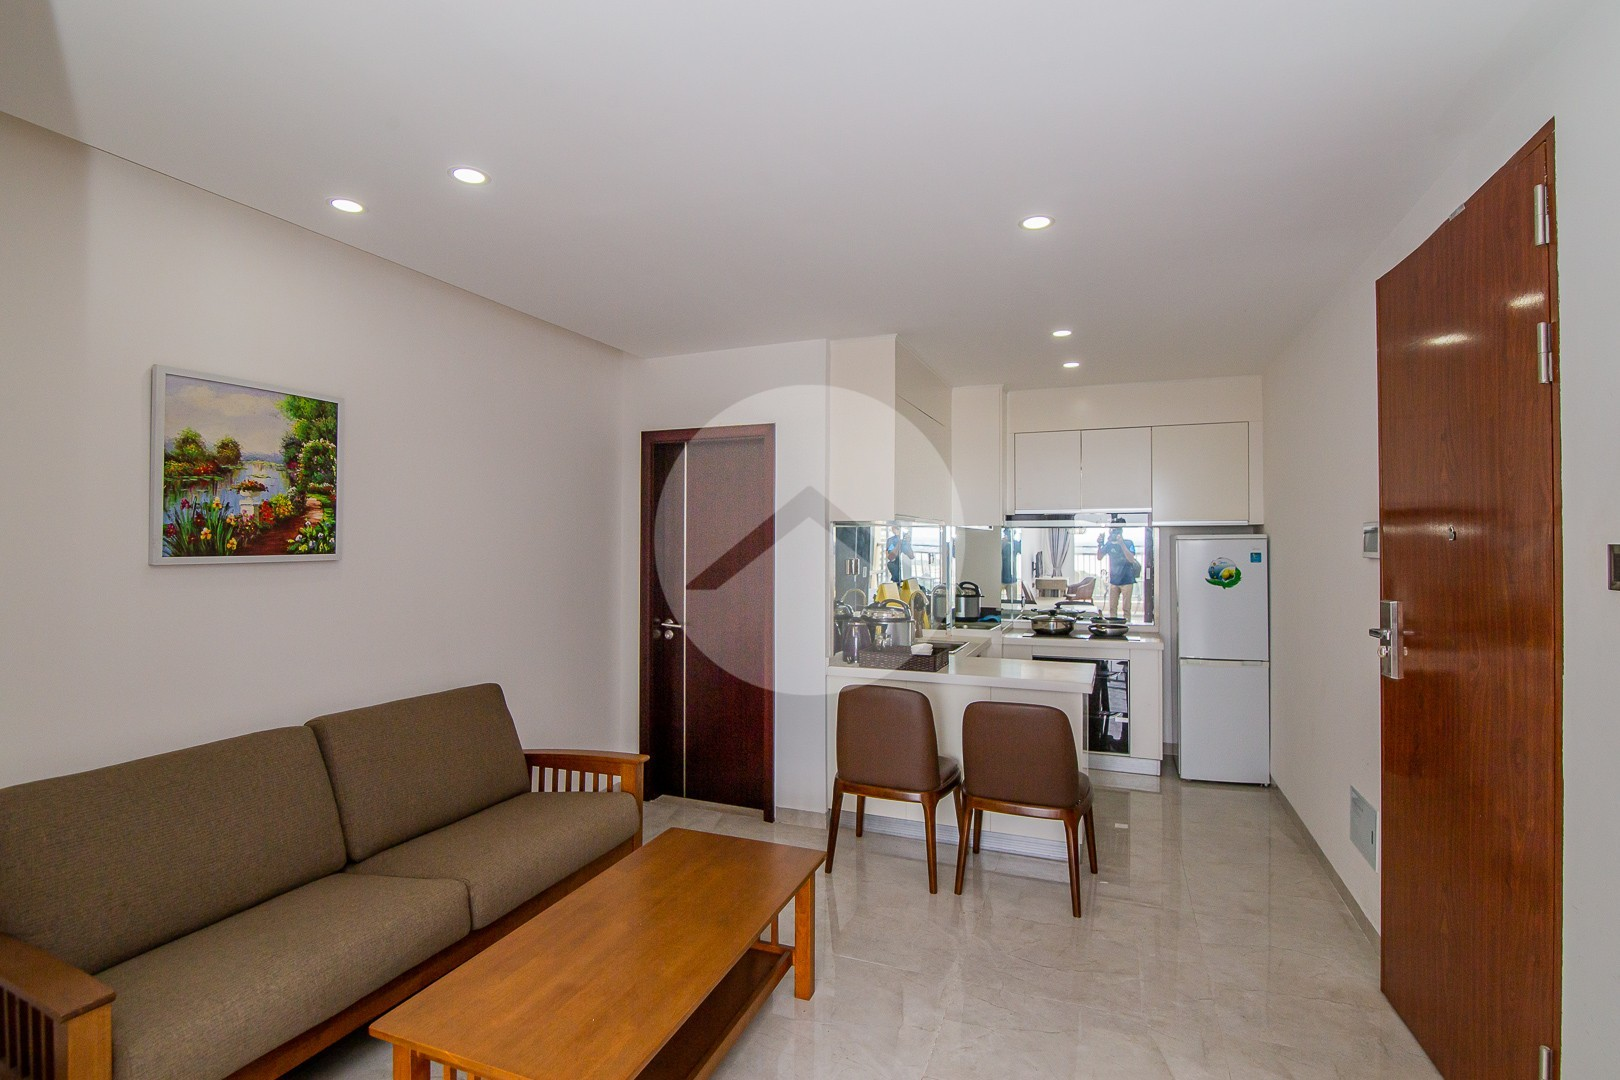 1 Bedroom Condo For Rent - Beoung Riang, Phnom Penh